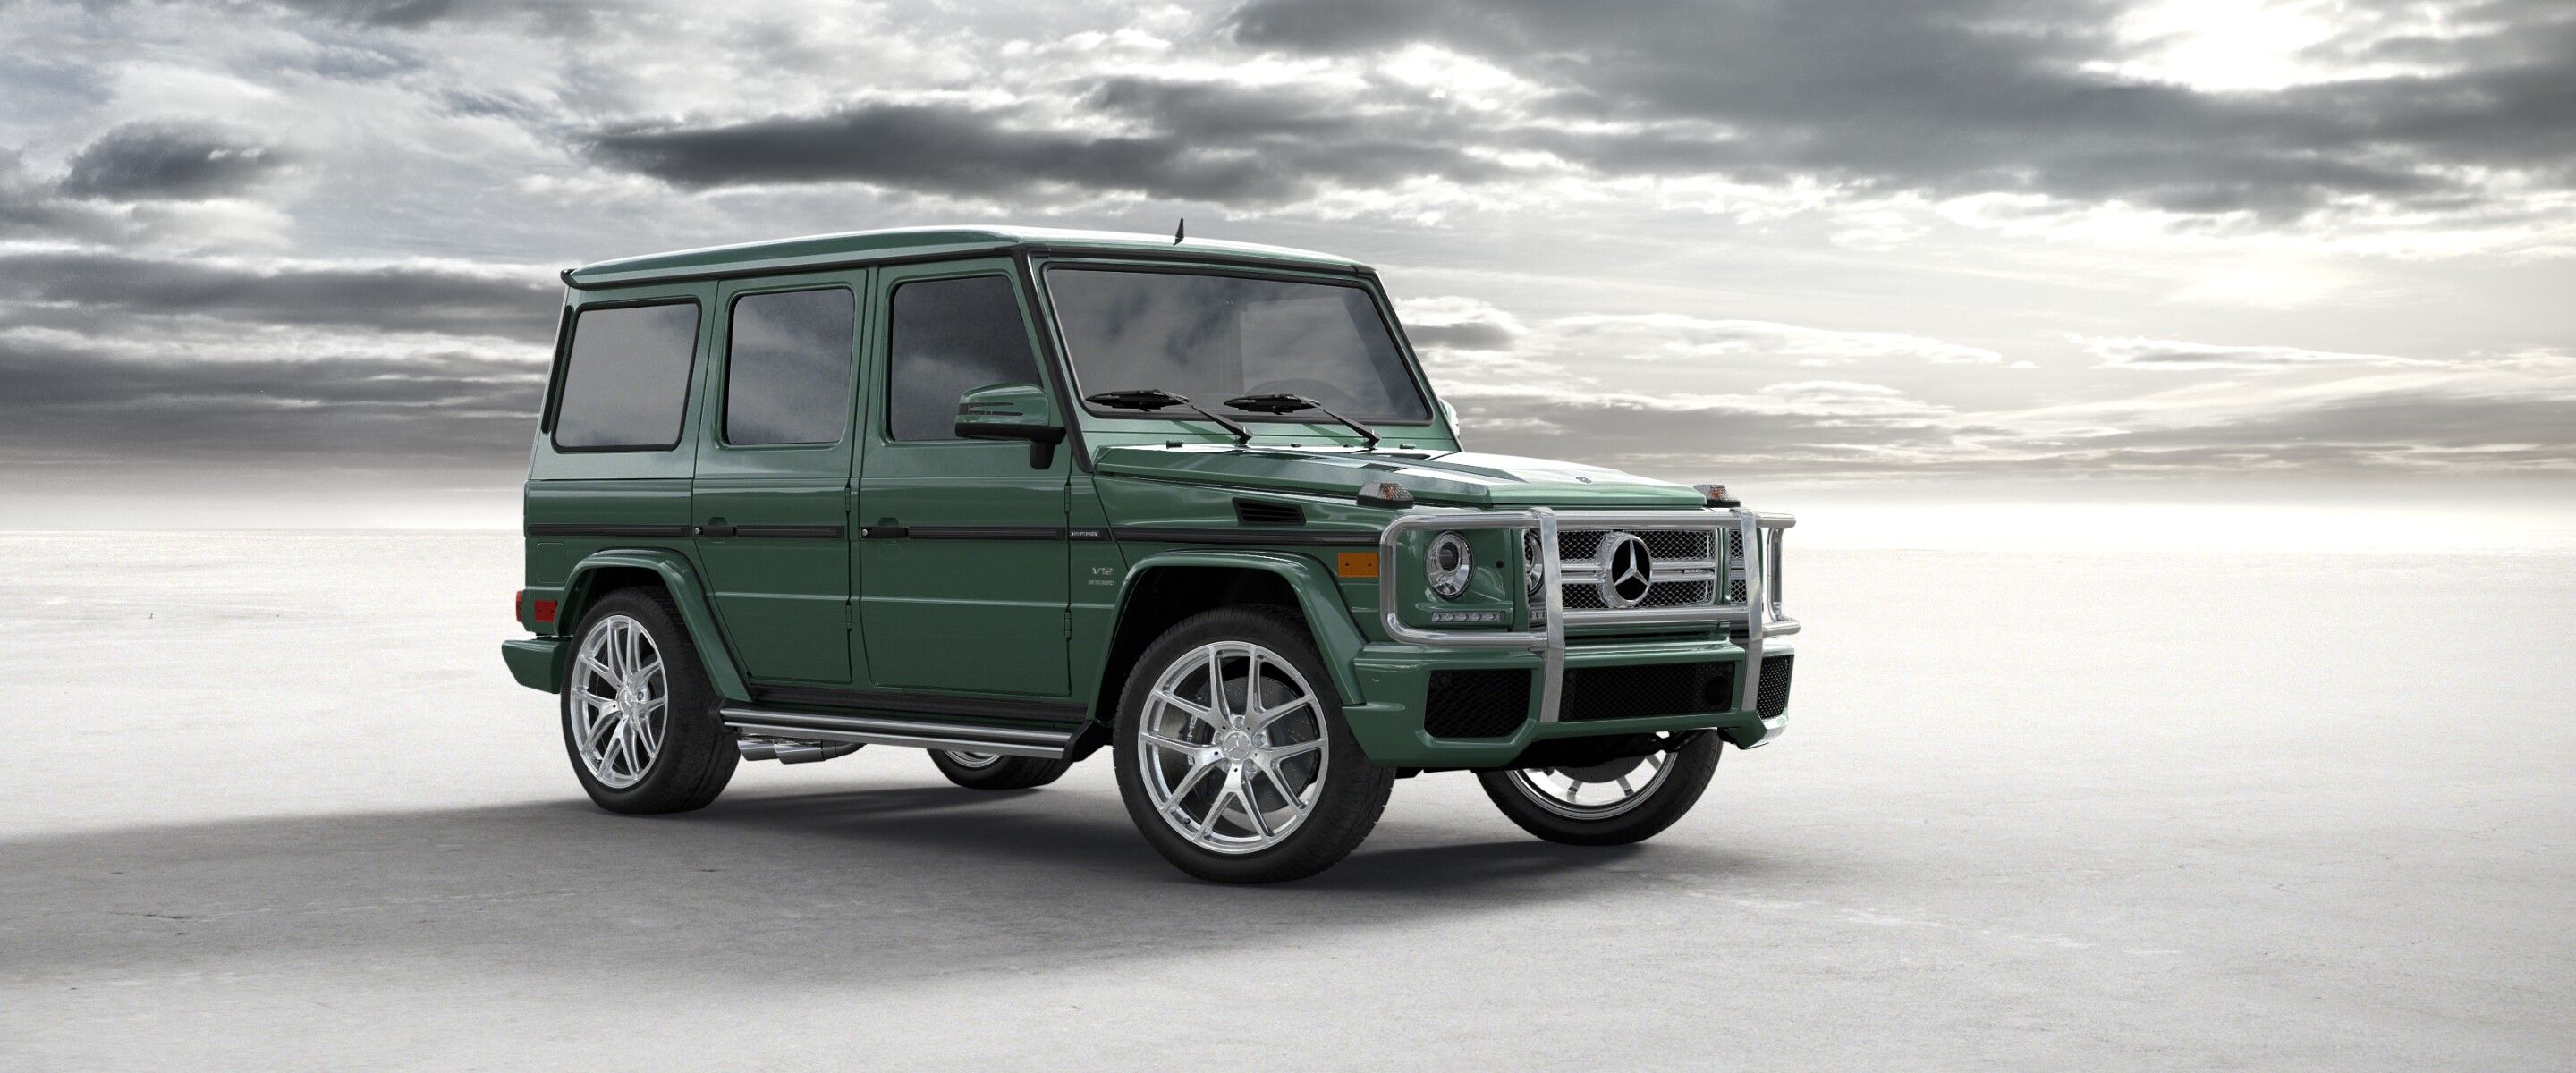 benz suv jeep build cars pinterest your amg pin mercedes